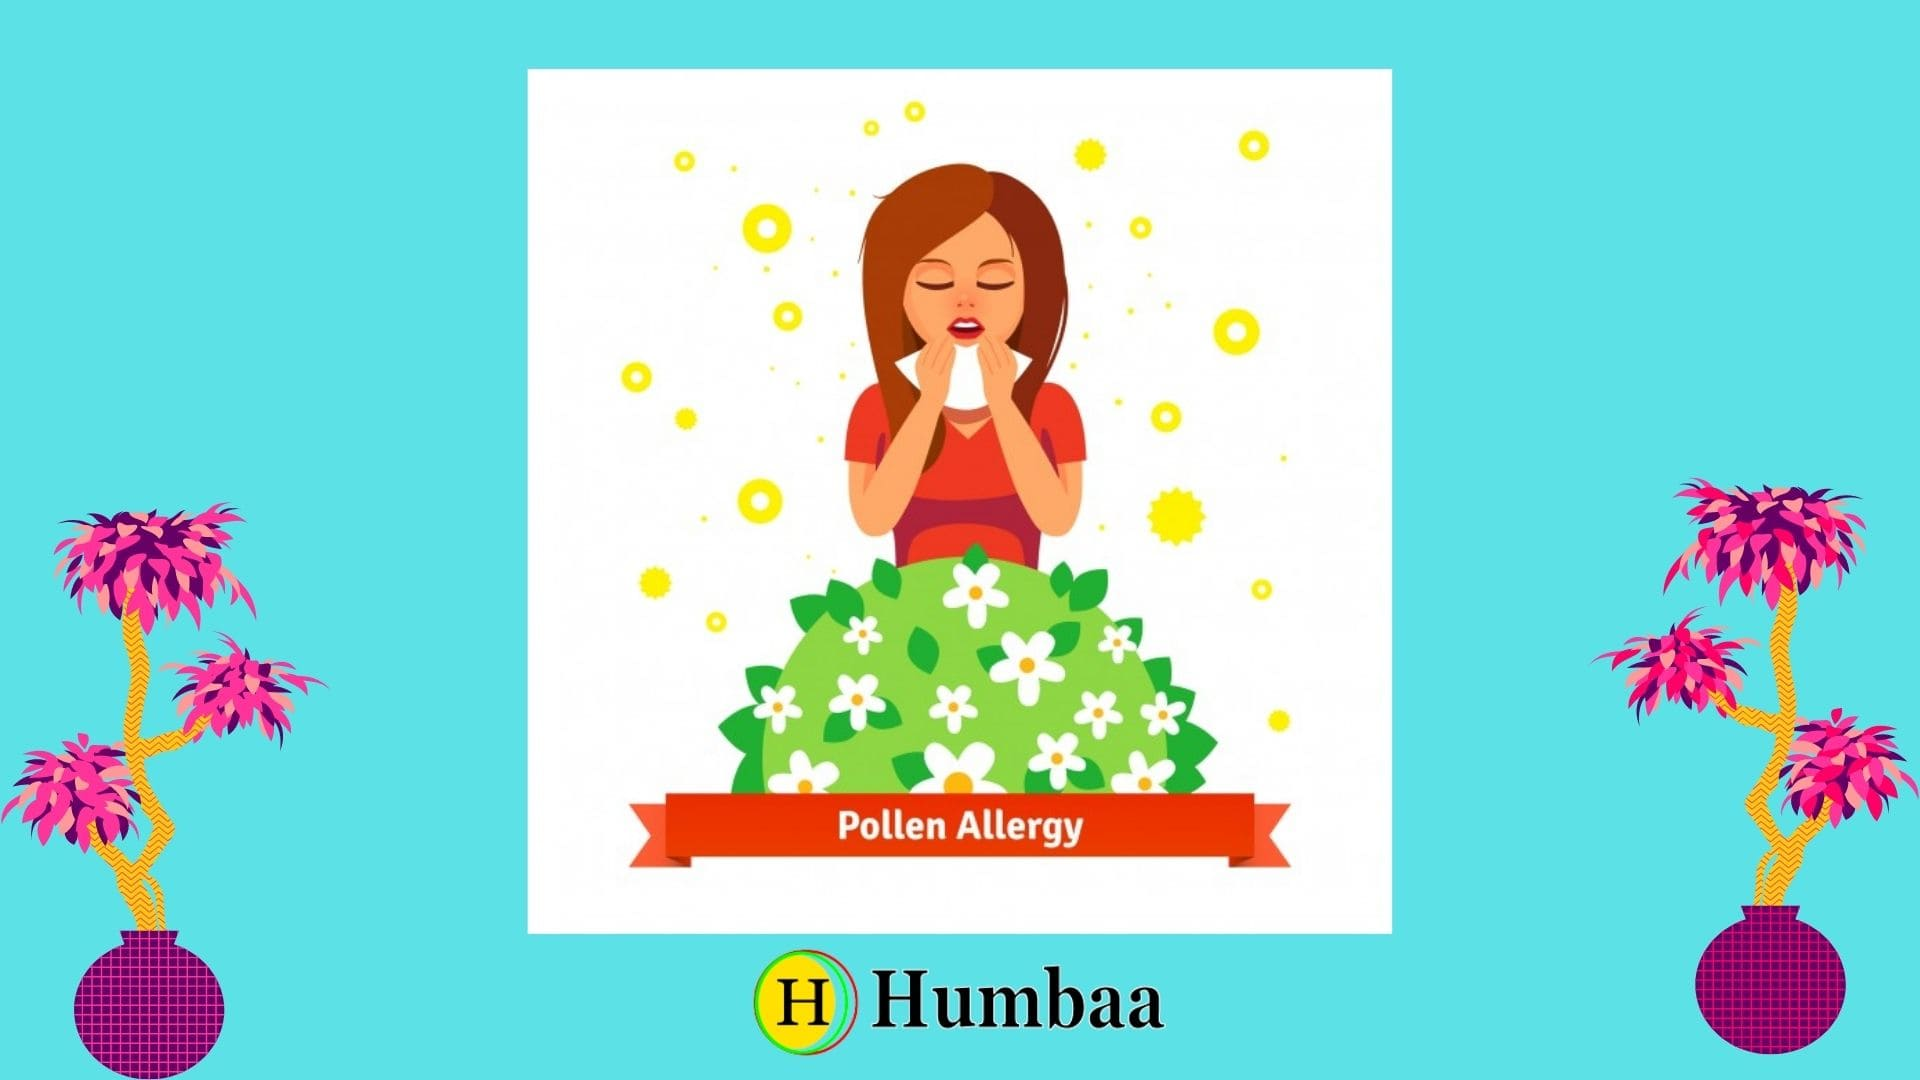 How to Check the Pollen Count in Your Area